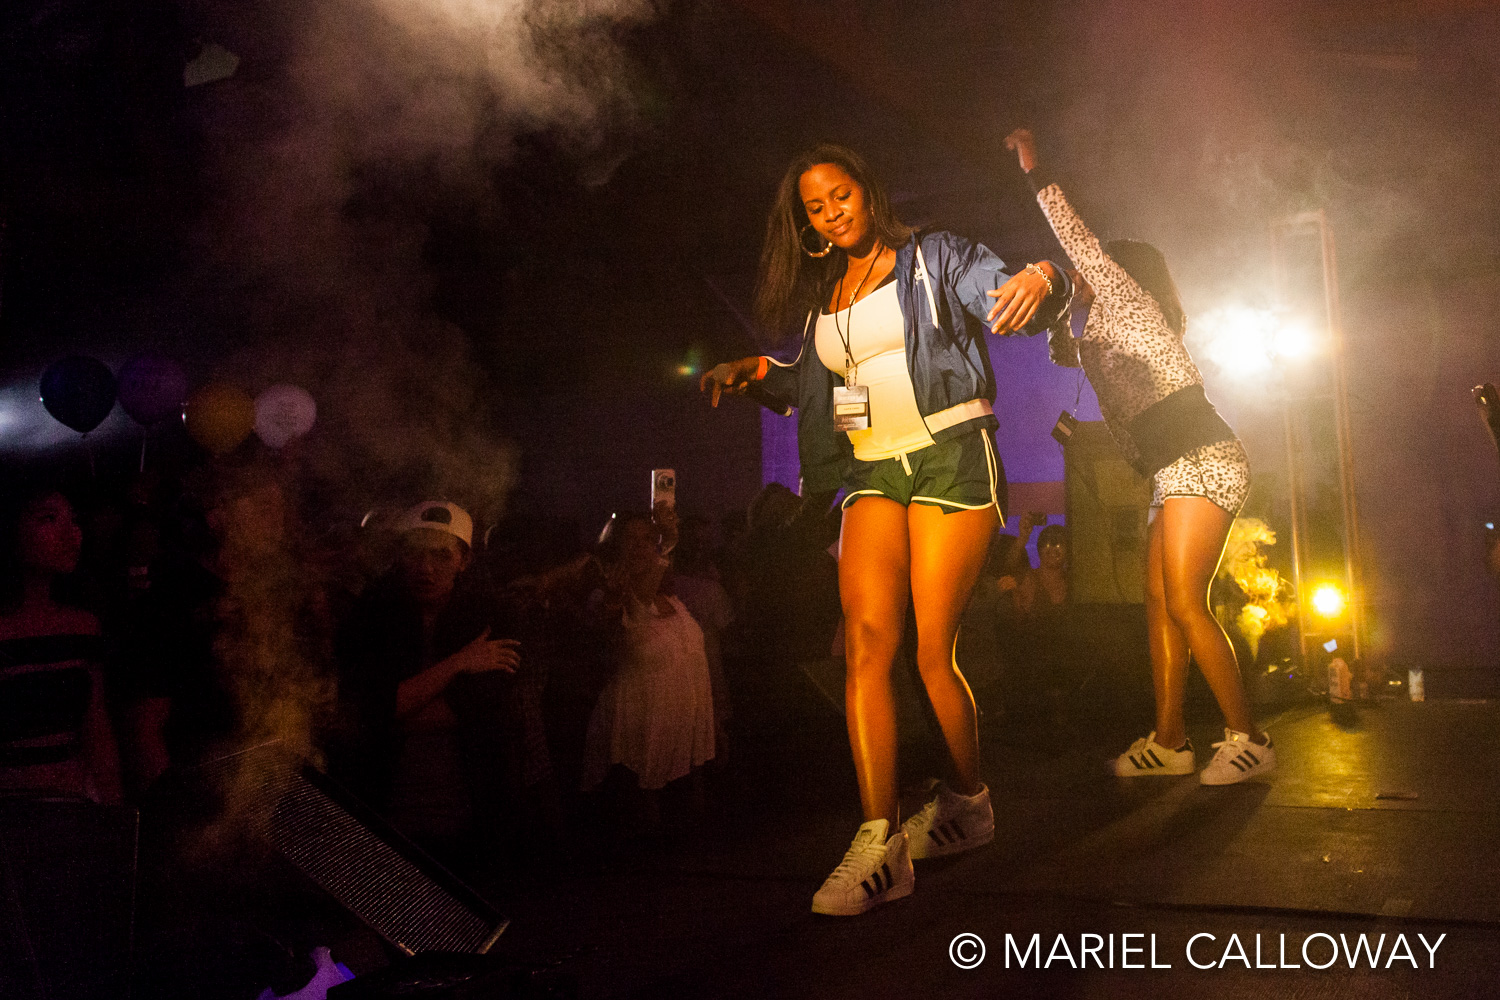 Los-Angeles-Concert-Photography-Small-sRGB-27.jpg